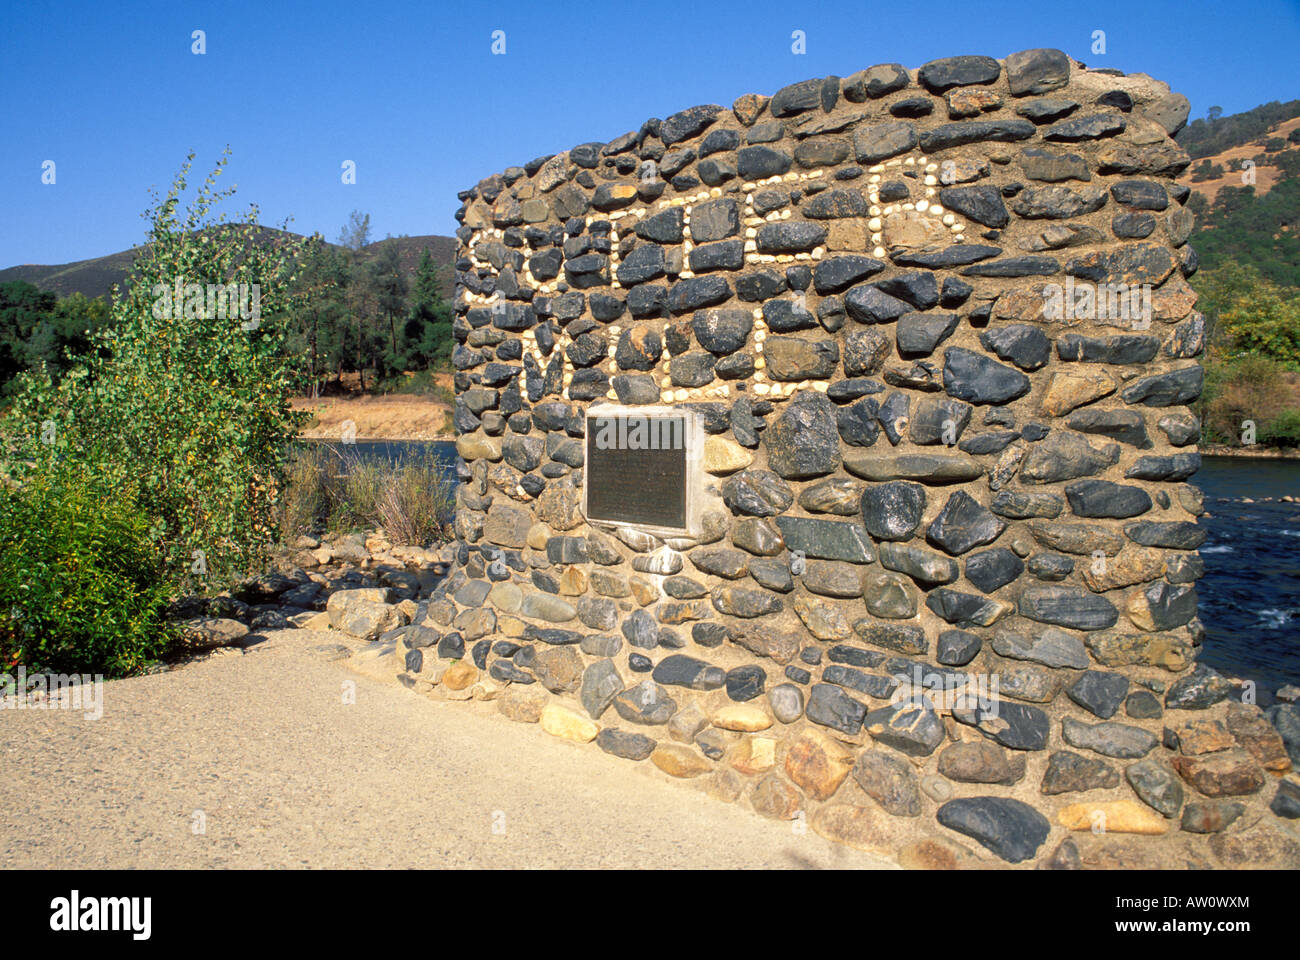 Plaque at the site of Sutters Mill Marshall Gold Discovery State Historic Park Coloma California - Stock Image